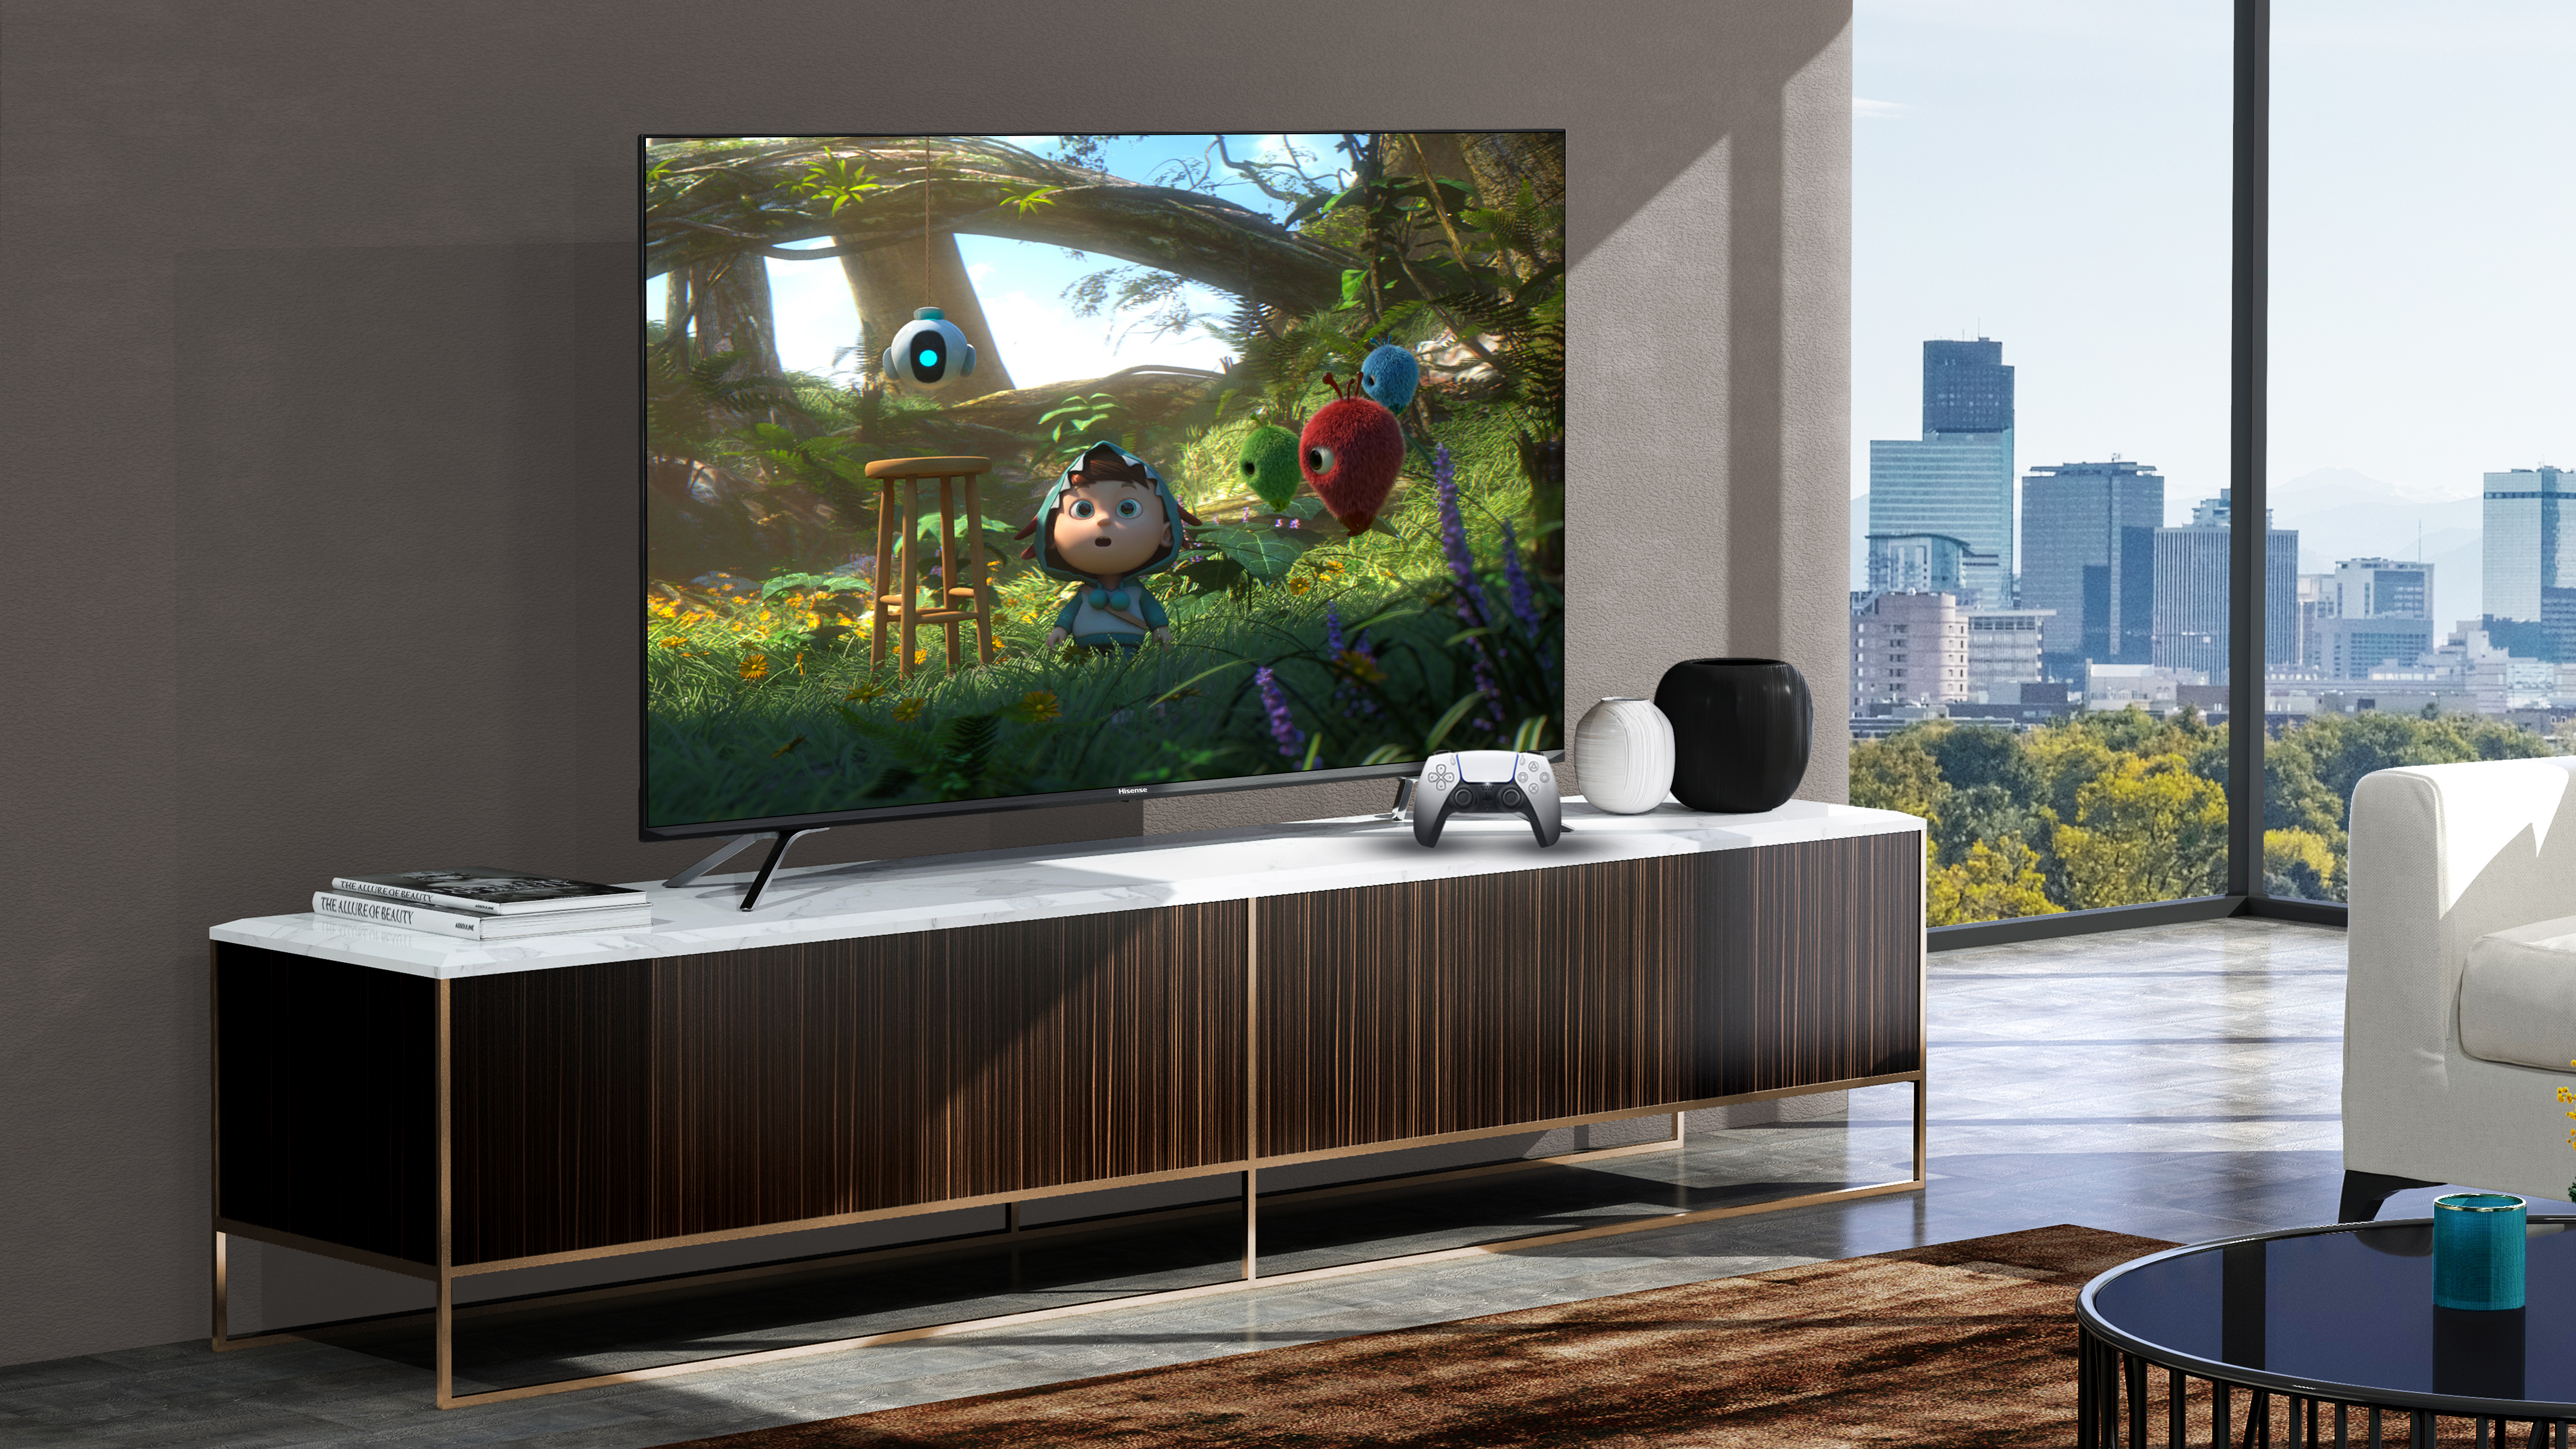 Best Tv Brand 2021 Who To Consider When Buying A New Television Techradar